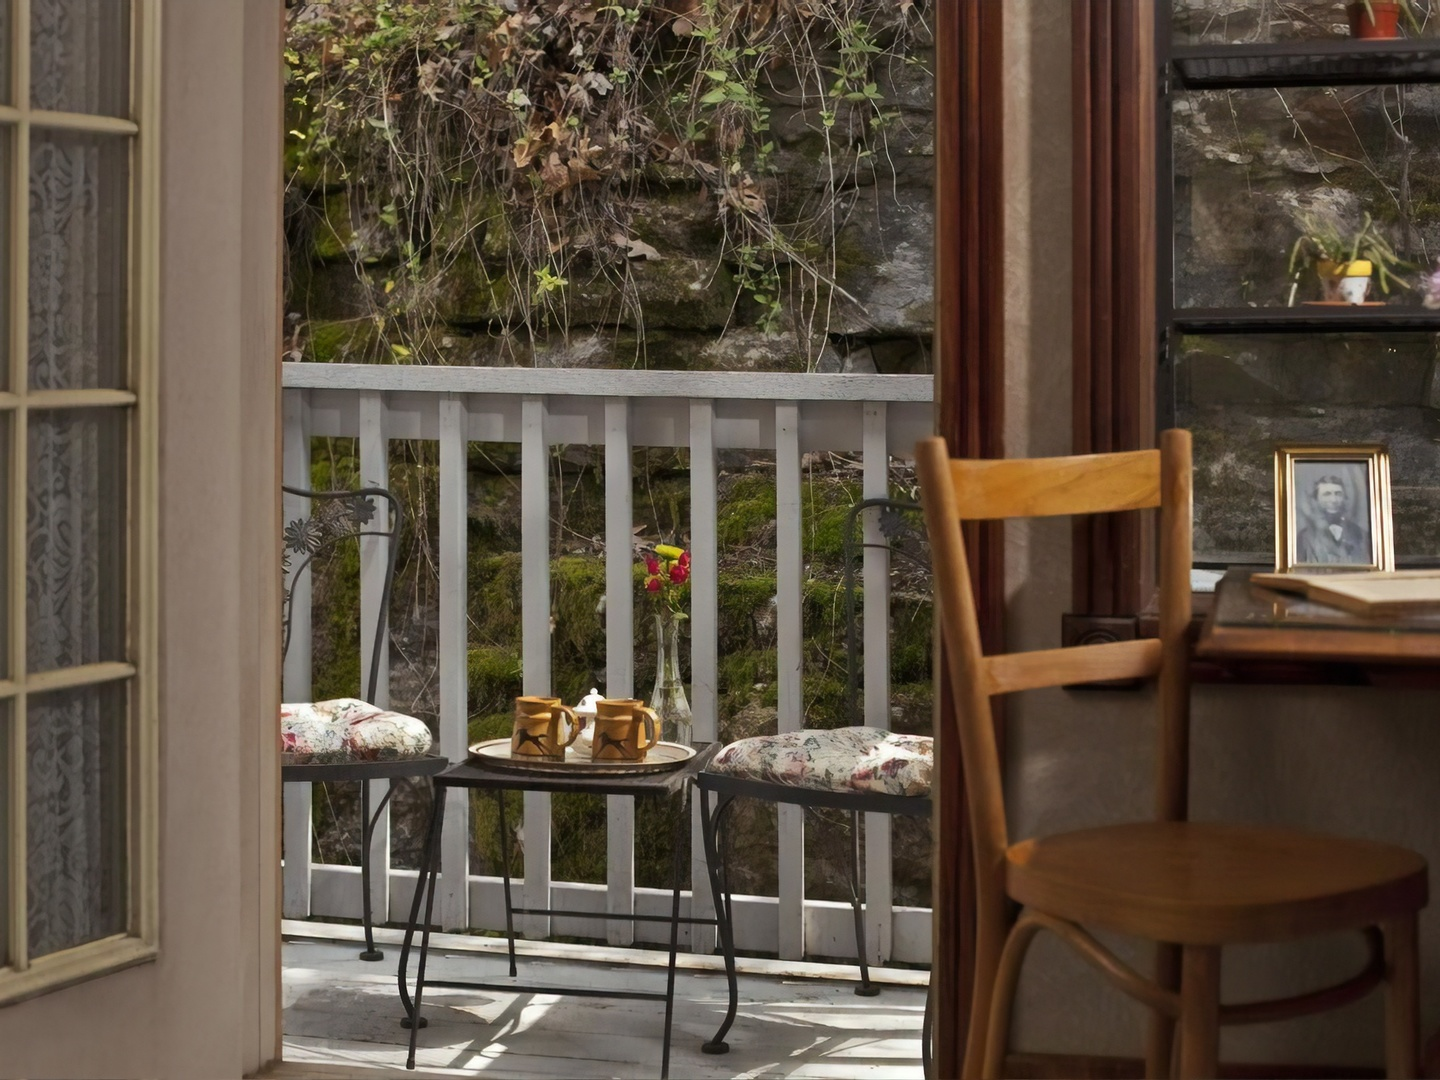 A dining room table in front of a window at Cliff Cottage Inn - Boutique Hotel and Bed & Breakfast.